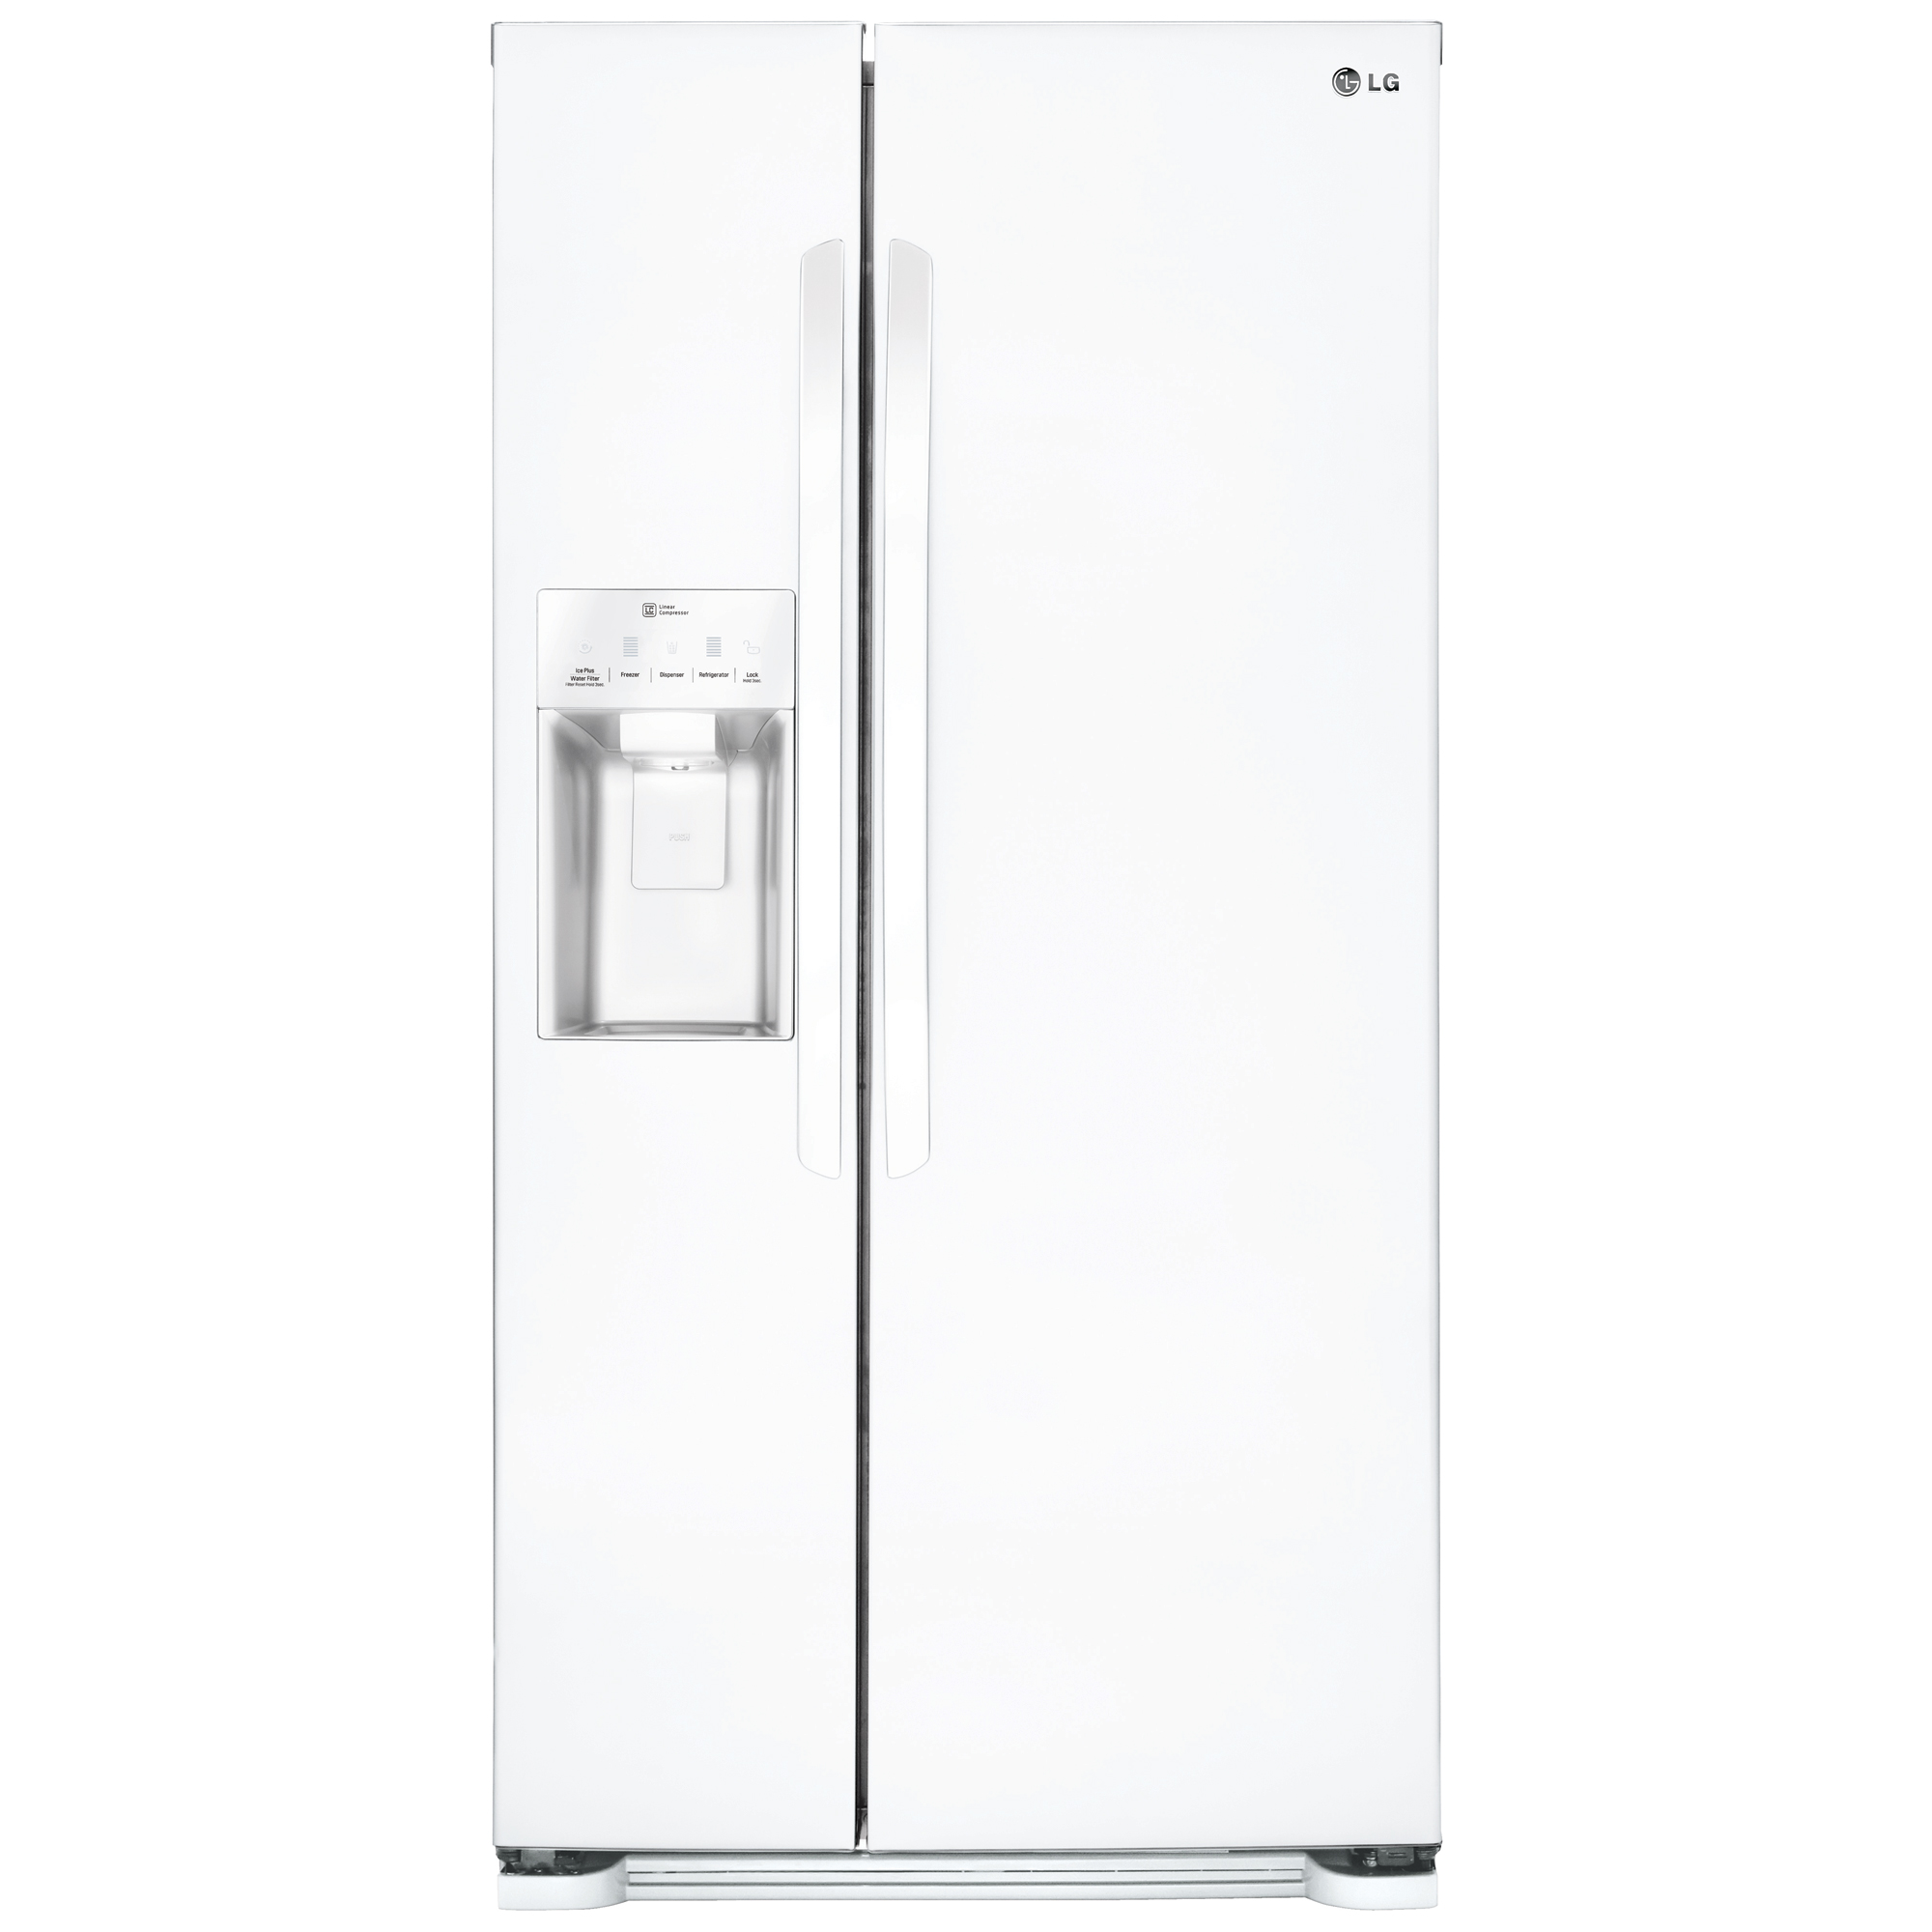 LG LSXS22423W 22.1 cu. ft. Side-by-Side Refrigerator with